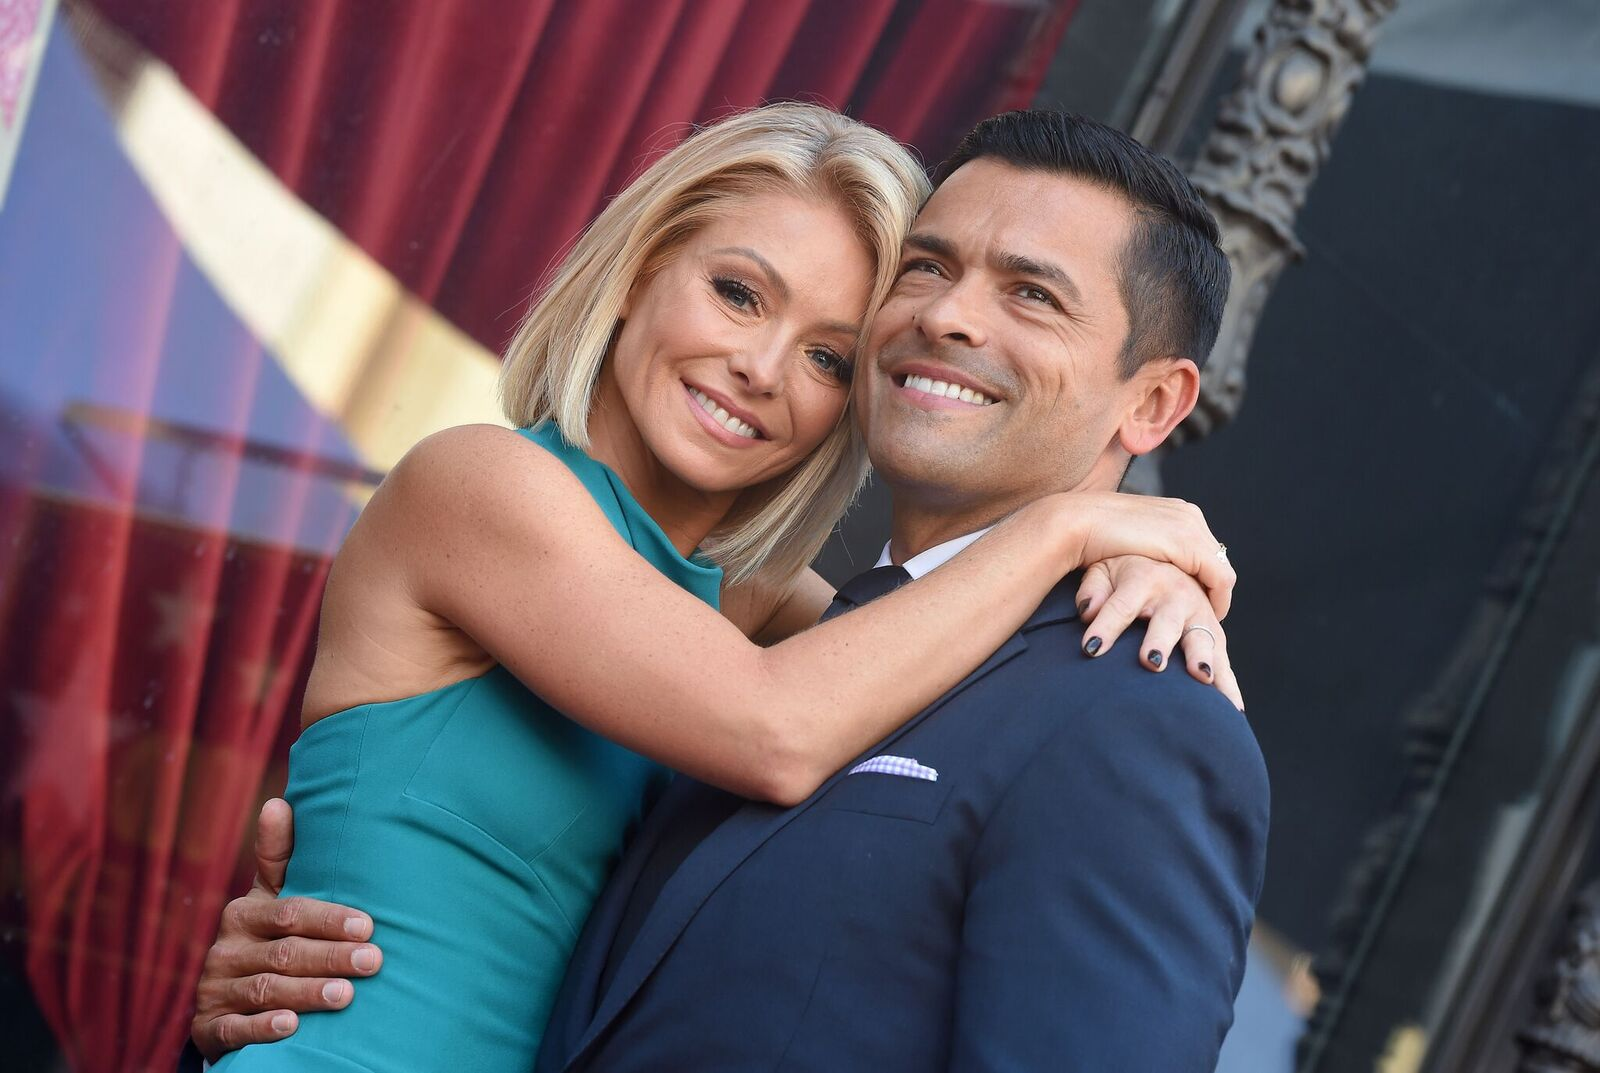 Kelly Ripa and Mark Consuelos at the ceremony honoring Ripa with a star on the Hollywood Walk of Fame on October 12, 2015, in California | Photo: Axelle/Bauer-Griffin/FilmMagic/Getty Images